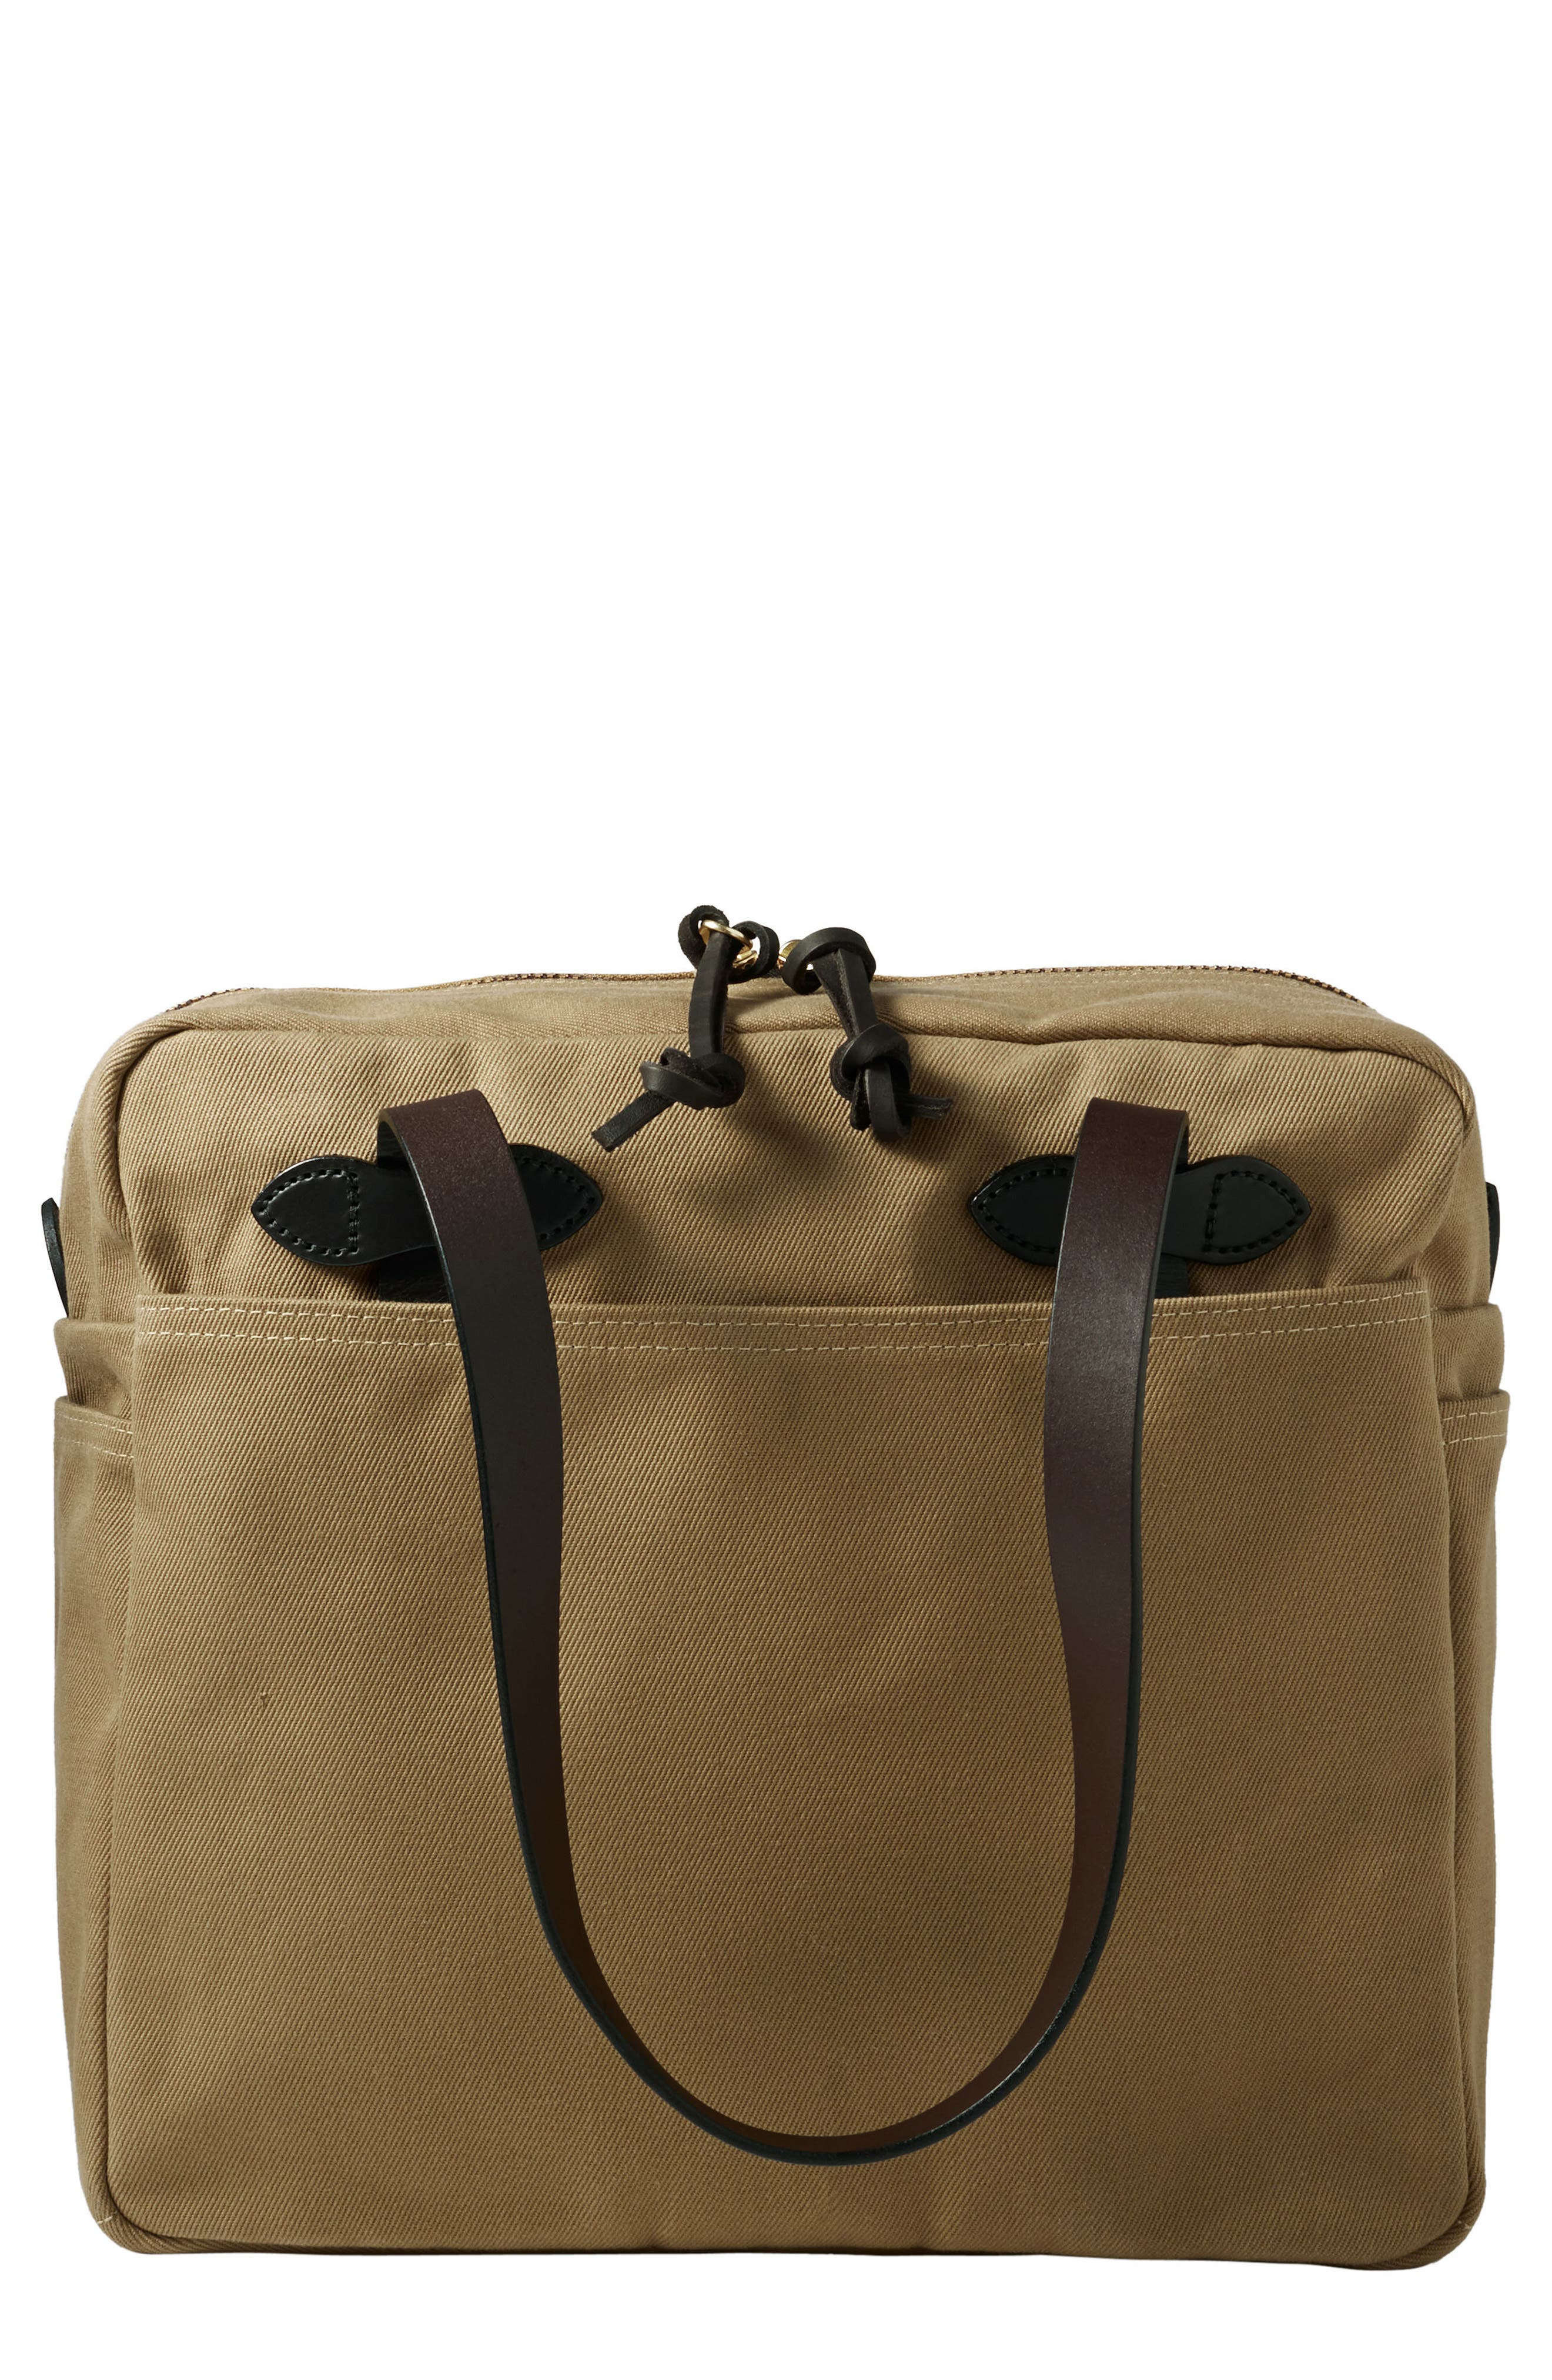 FILSON RUGGED TWILL ZIP TOTE BAG - BROWN